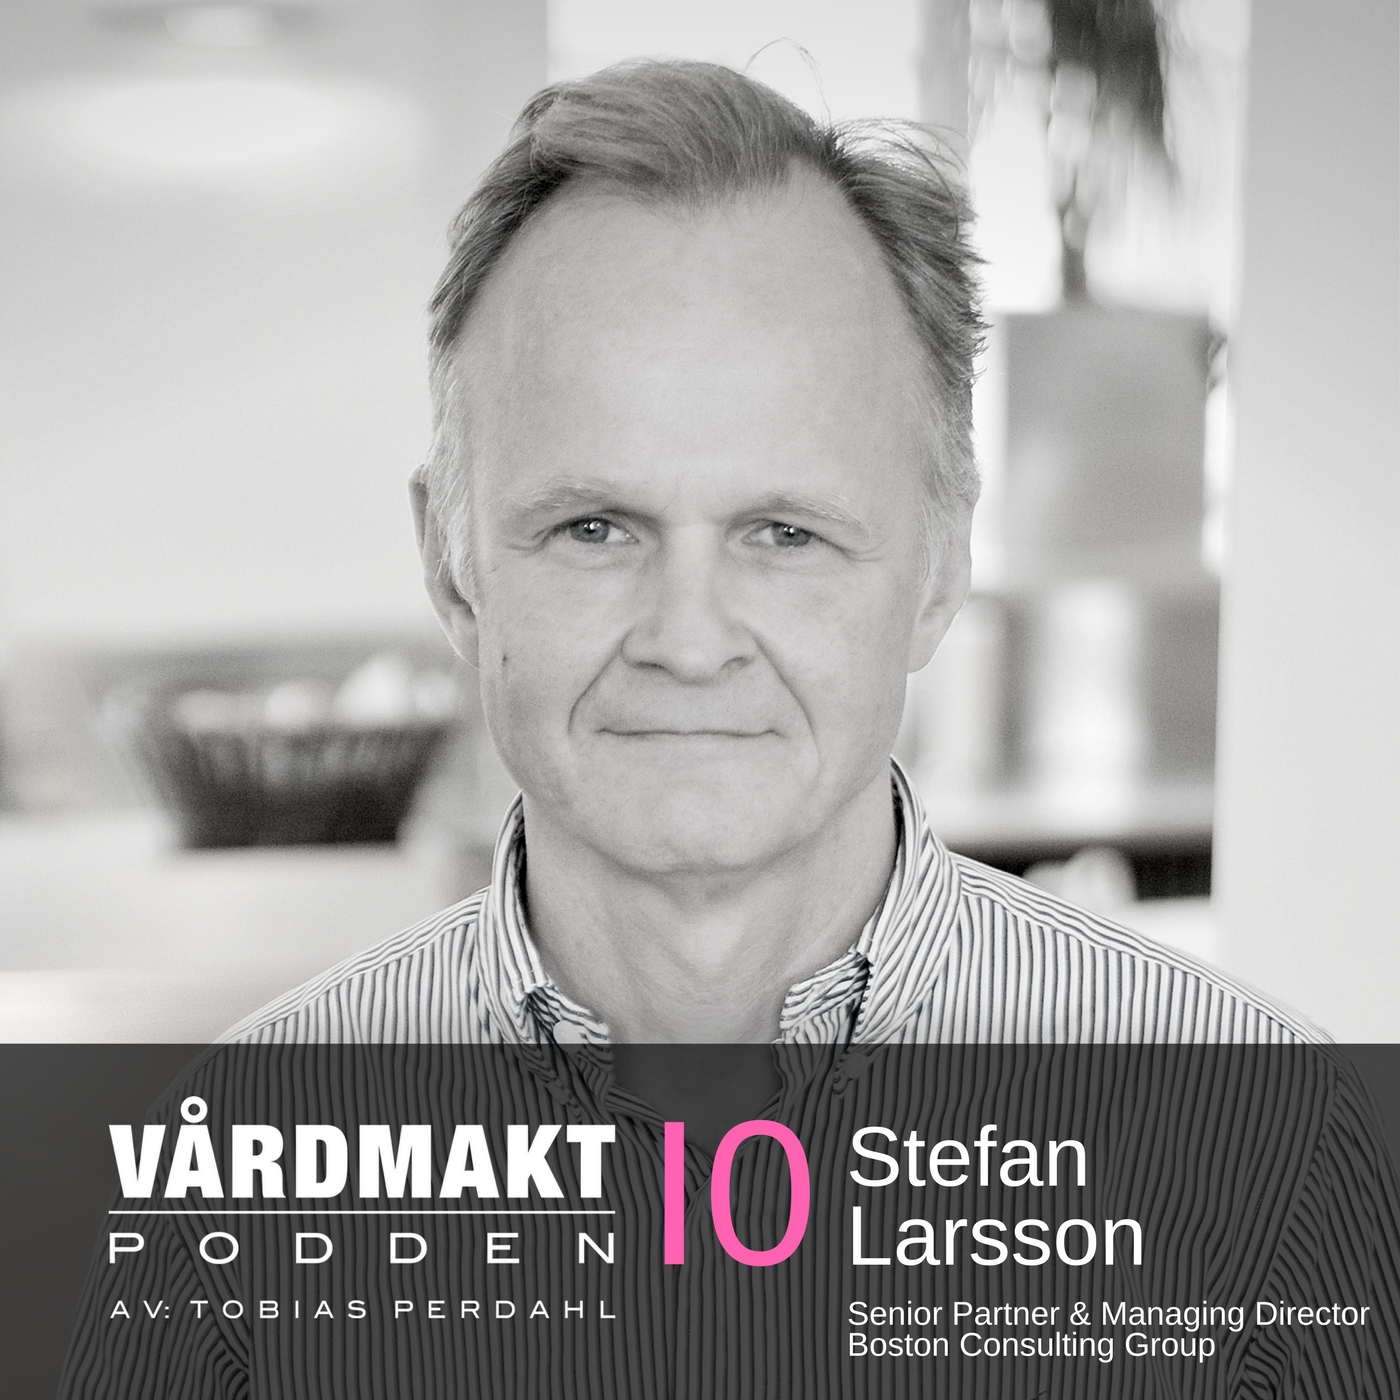 Stefan Larsson, Senior Partner och Managing Director på Boston Consulting Group, i Vårdmaktpodden.